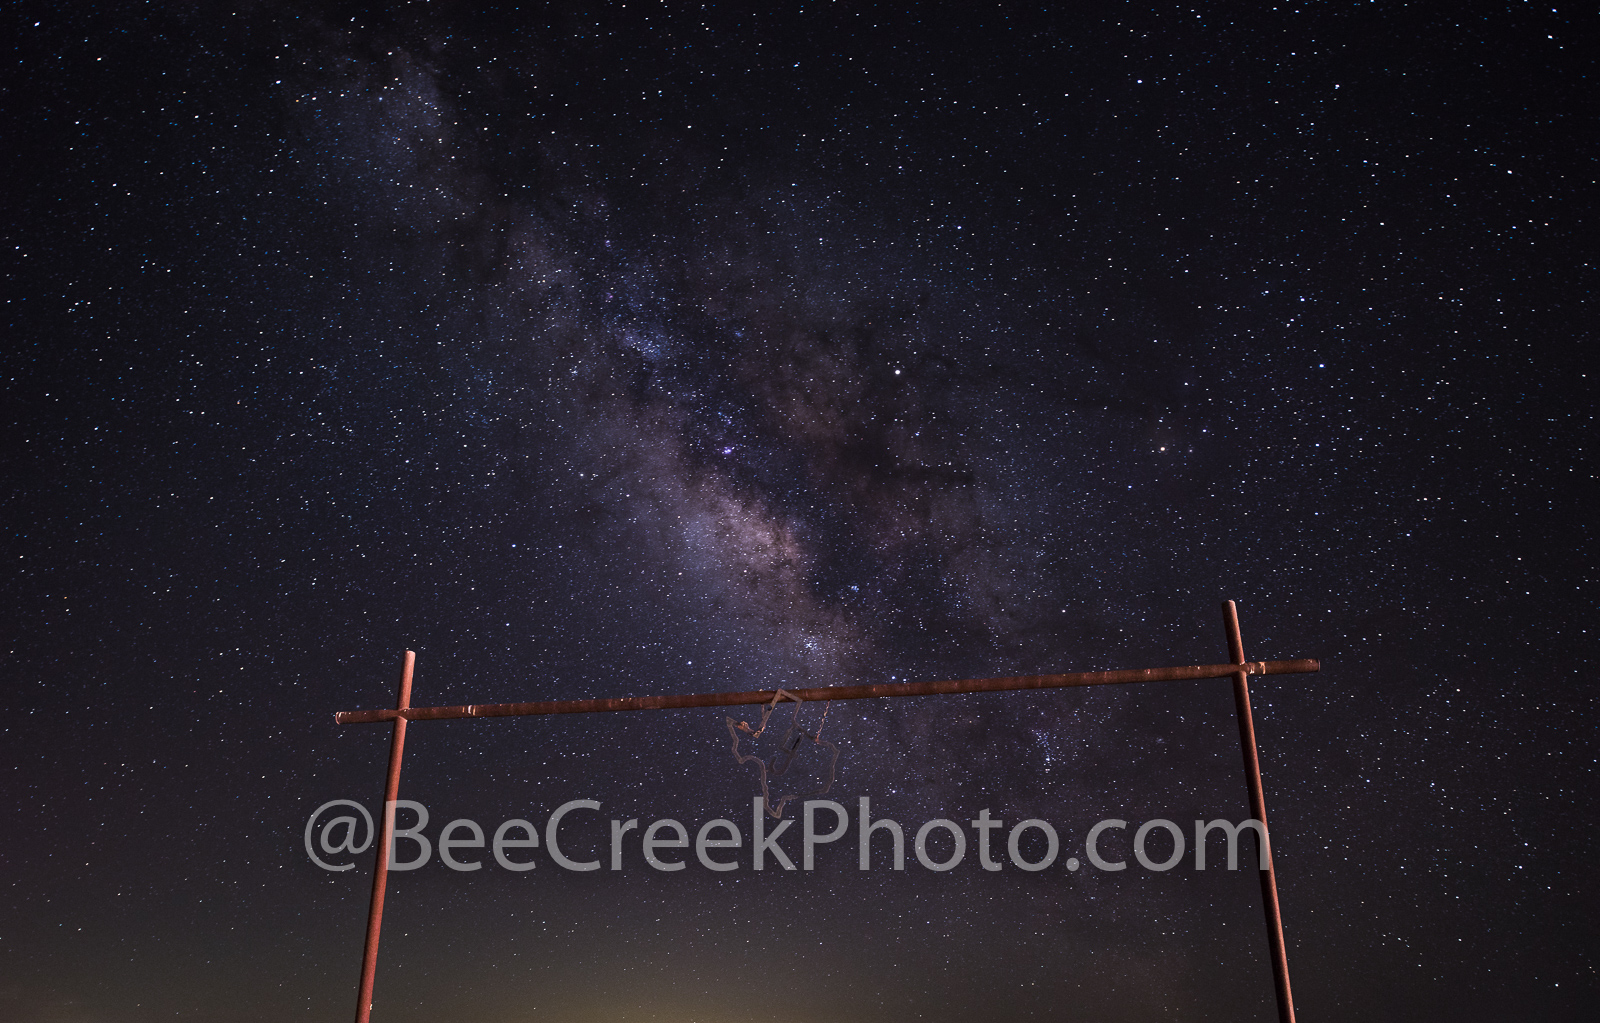 Astronomy, astrophotography, celestial, gate, ranch, dark, dark skies, galaxies, galaxy, golden,, landscape, light pollution, milky way, milkyway, night, night landscape, night landscapes, night photo, photo